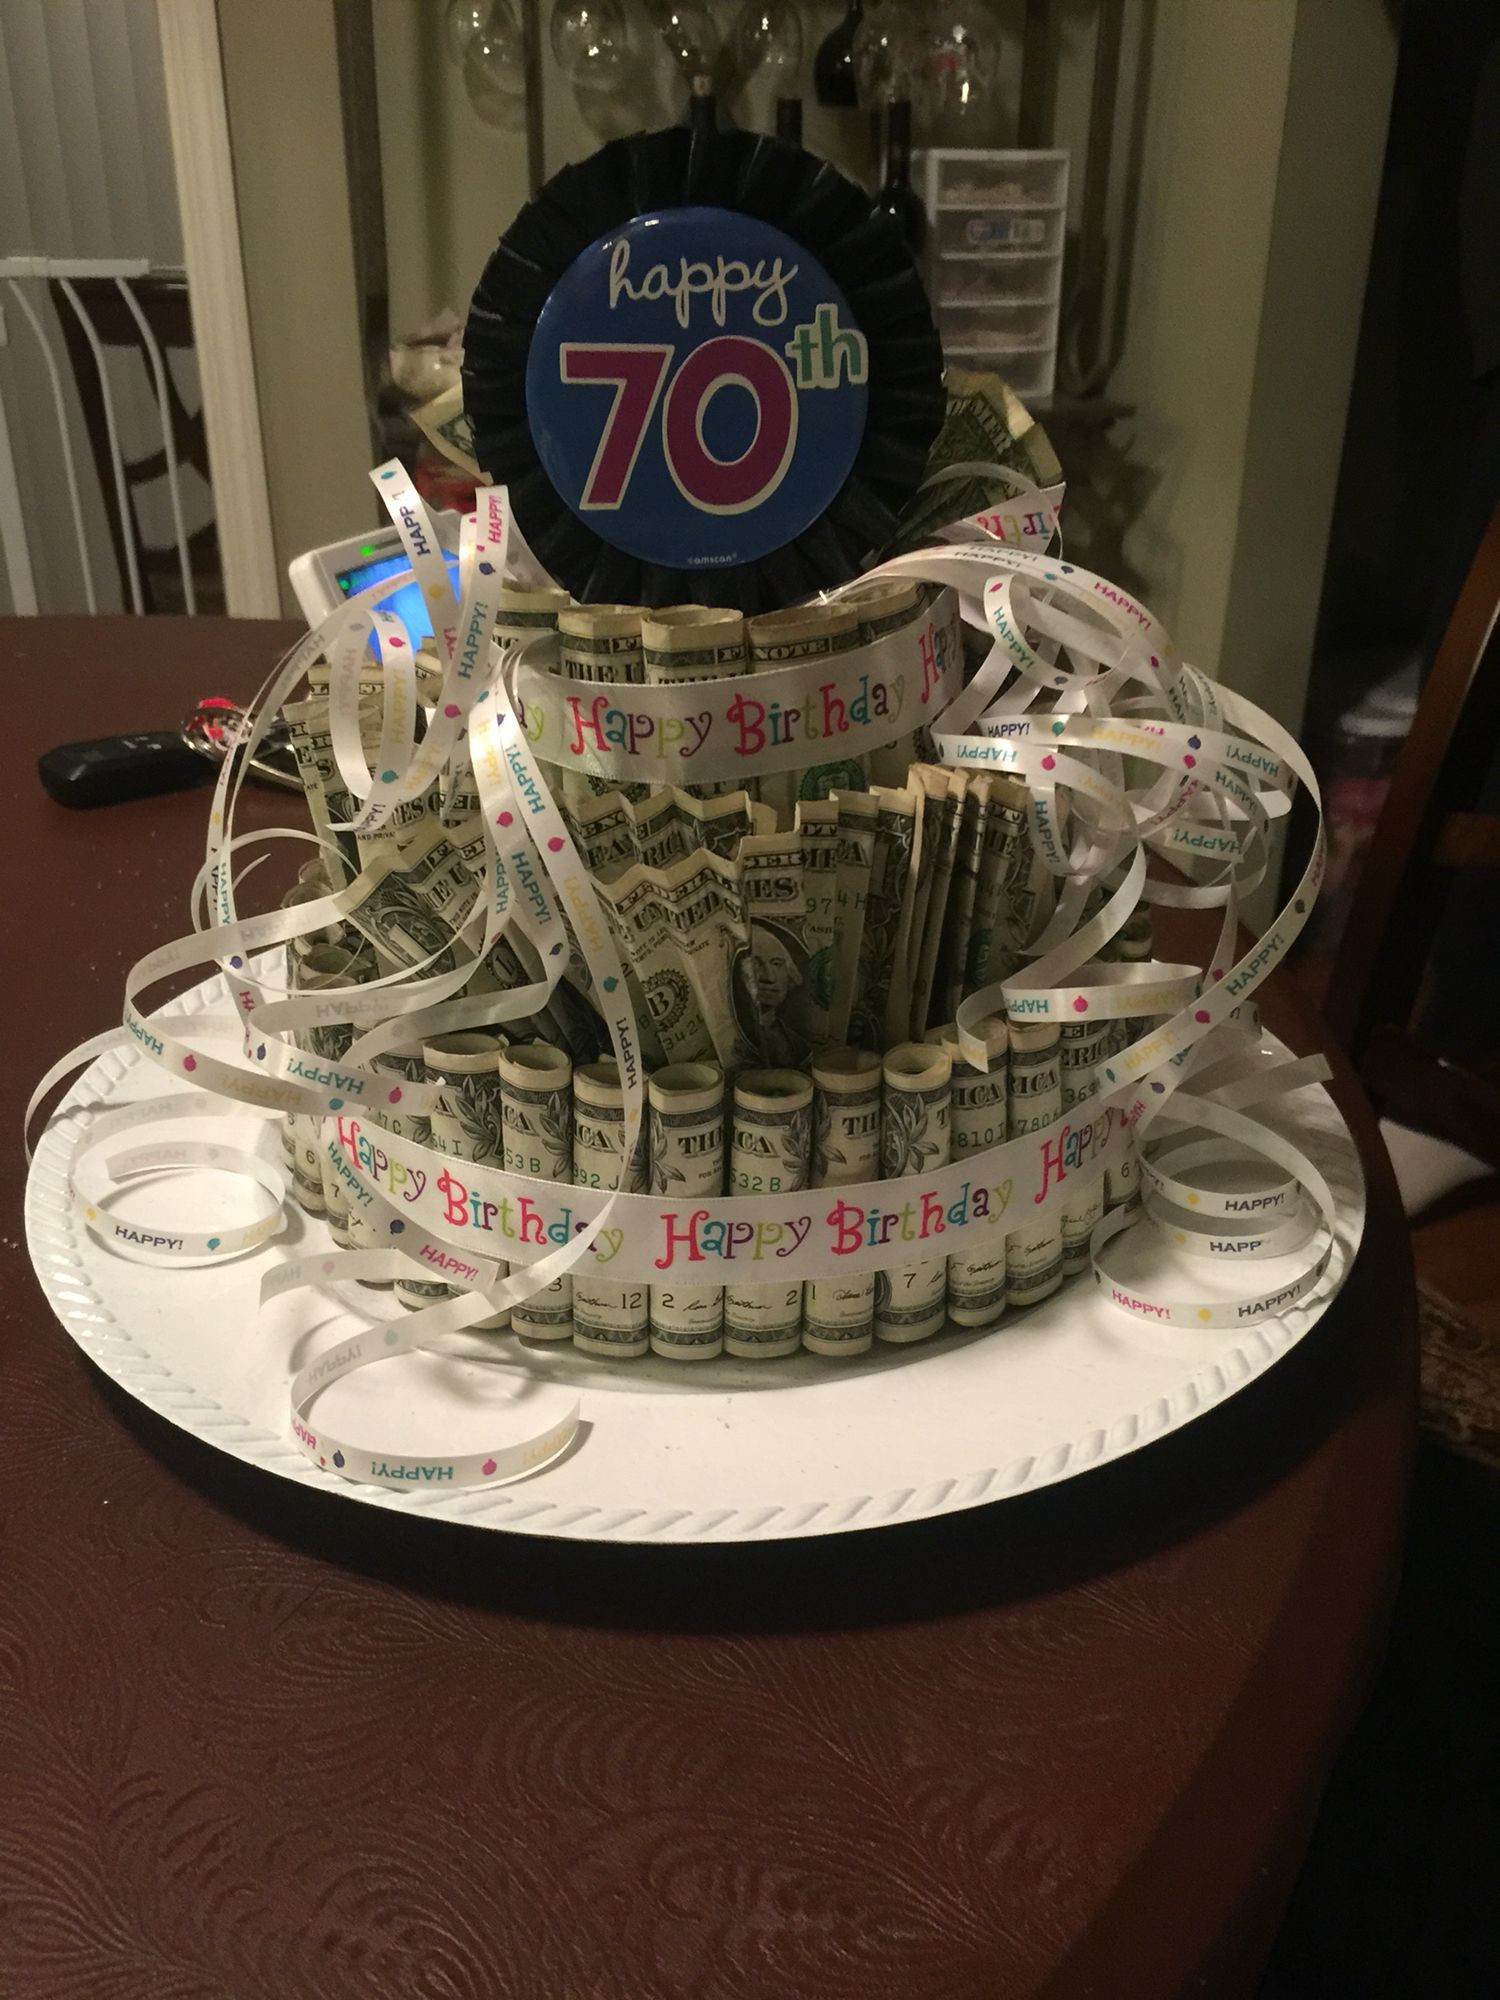 Best ideas about Dollar Bill Gift Ideas . Save or Pin Money cake with dollar bills Gift Ideas Now.